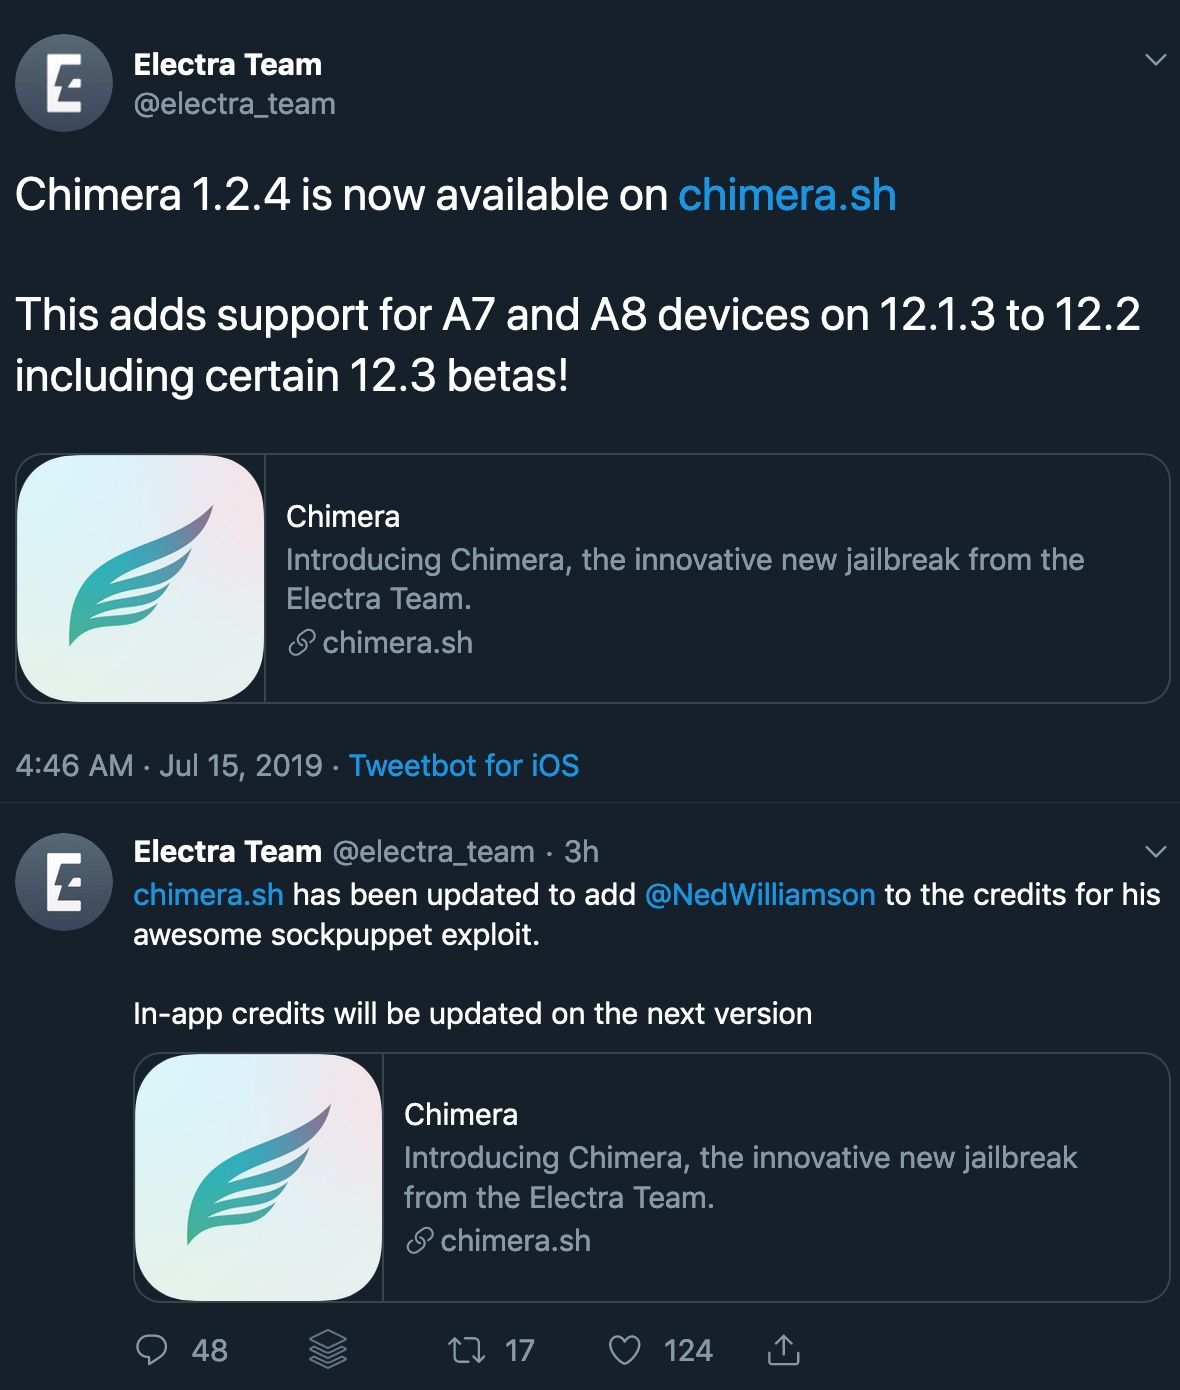 Chimera v1 2 4 brings support for A7-A8 devices running iOS